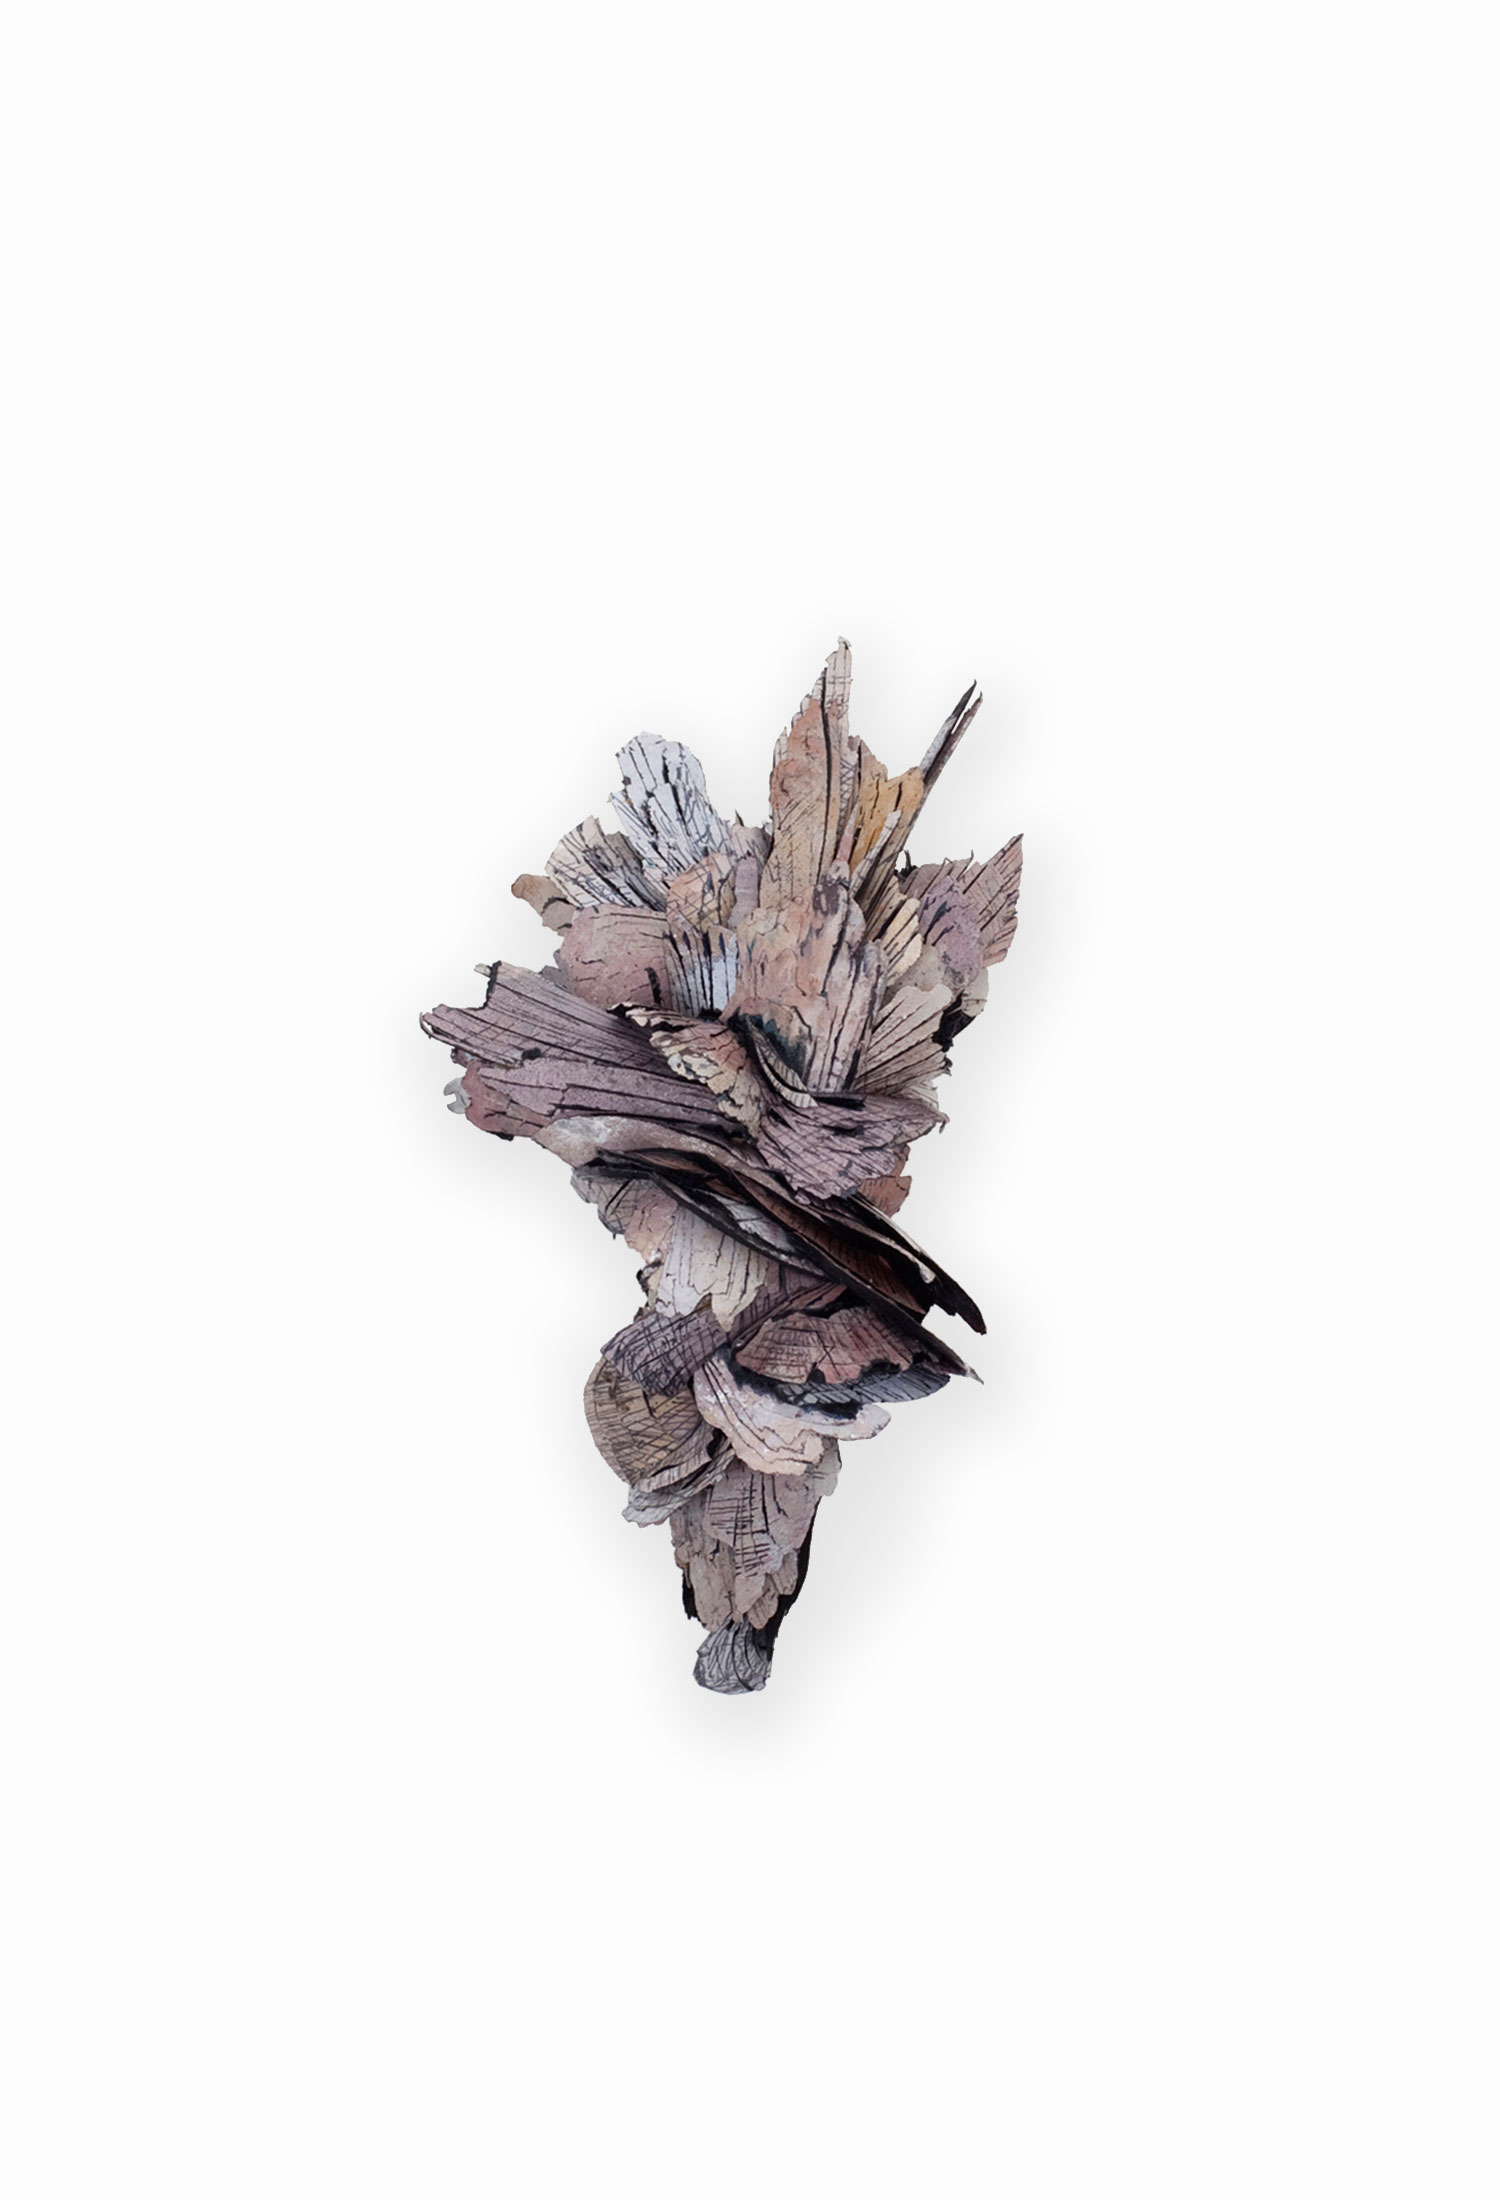 Free Radical (part 9)     Brooch     |  2012     |   Treated cellulose, paint, coal, glue, silver, brass, stainless steel     | 95X53X48 mm